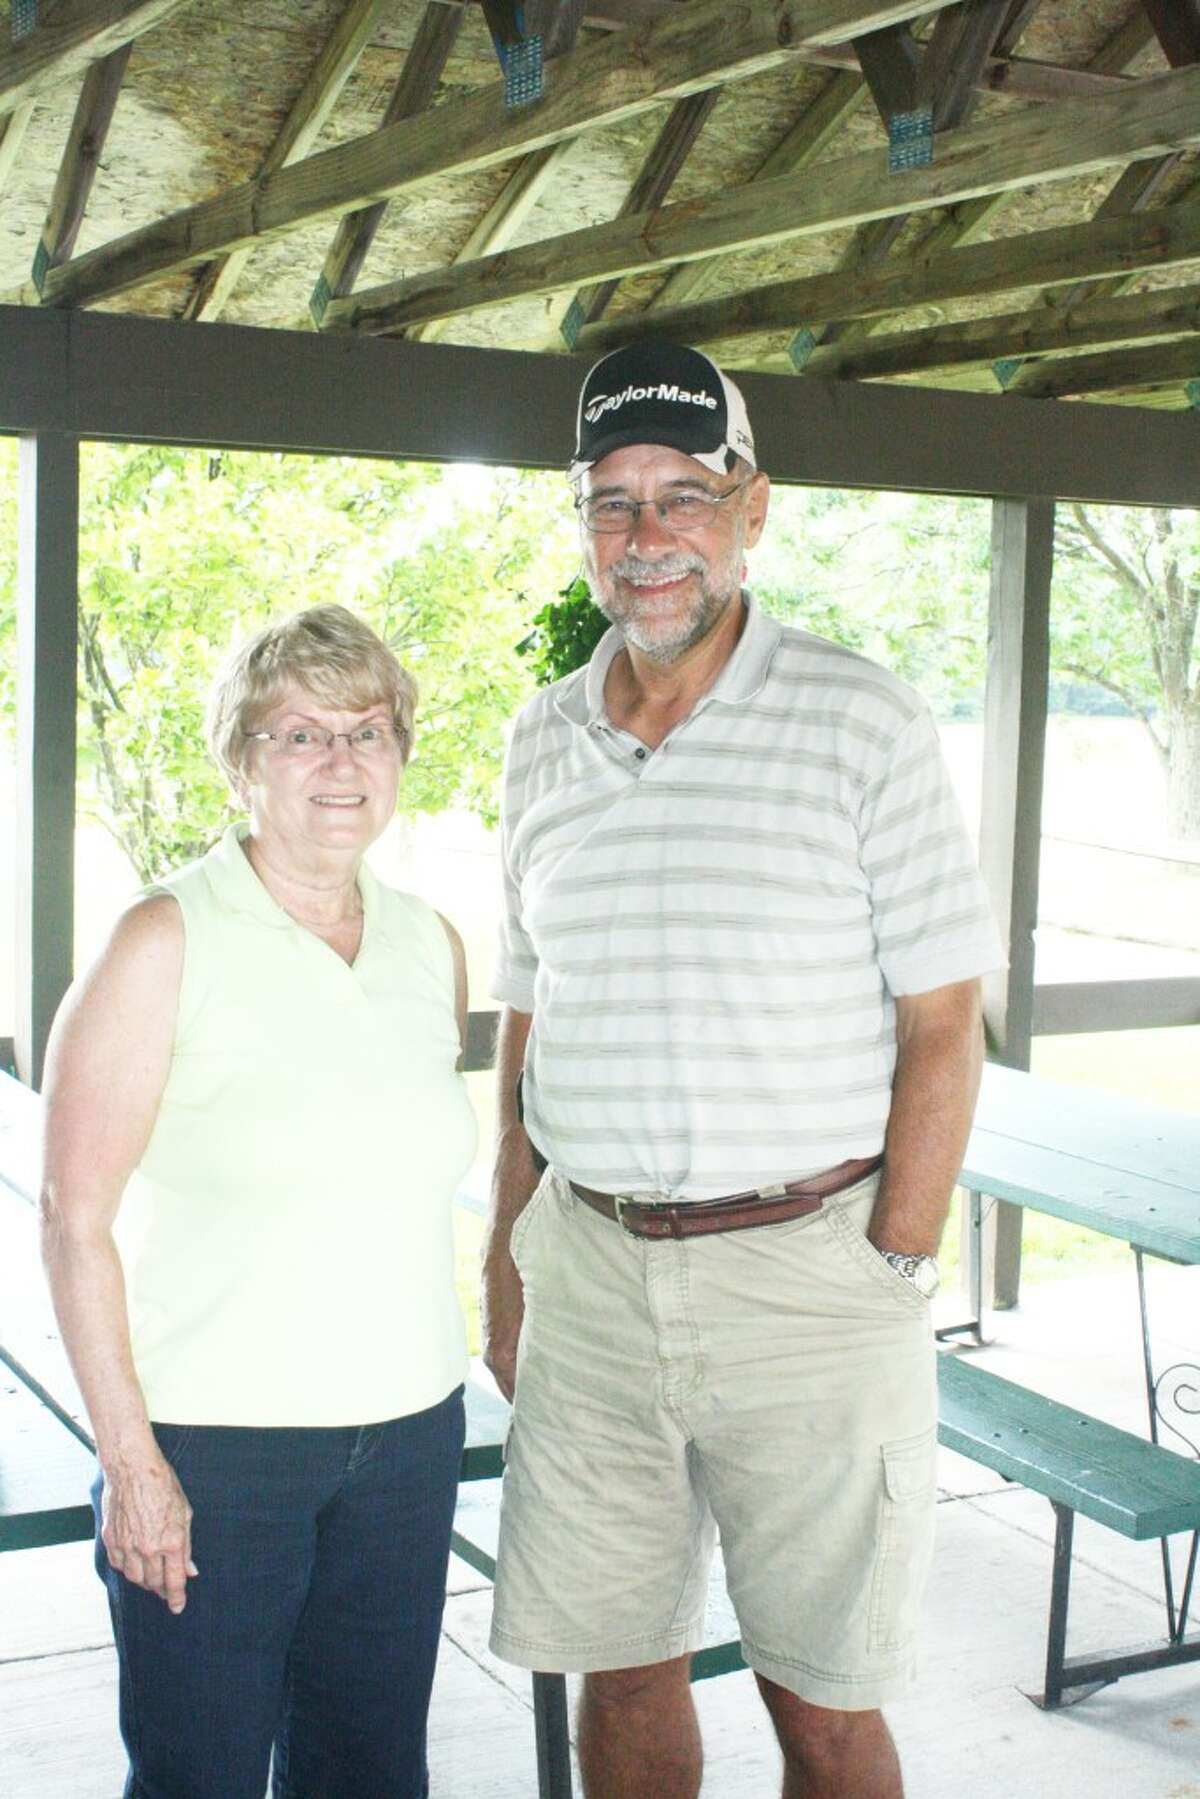 Couples: Kathy Gondick and Chuck Muir are partners in the Reed City Couples League at Spring Valley. (Herald Review photo/John Raffel)